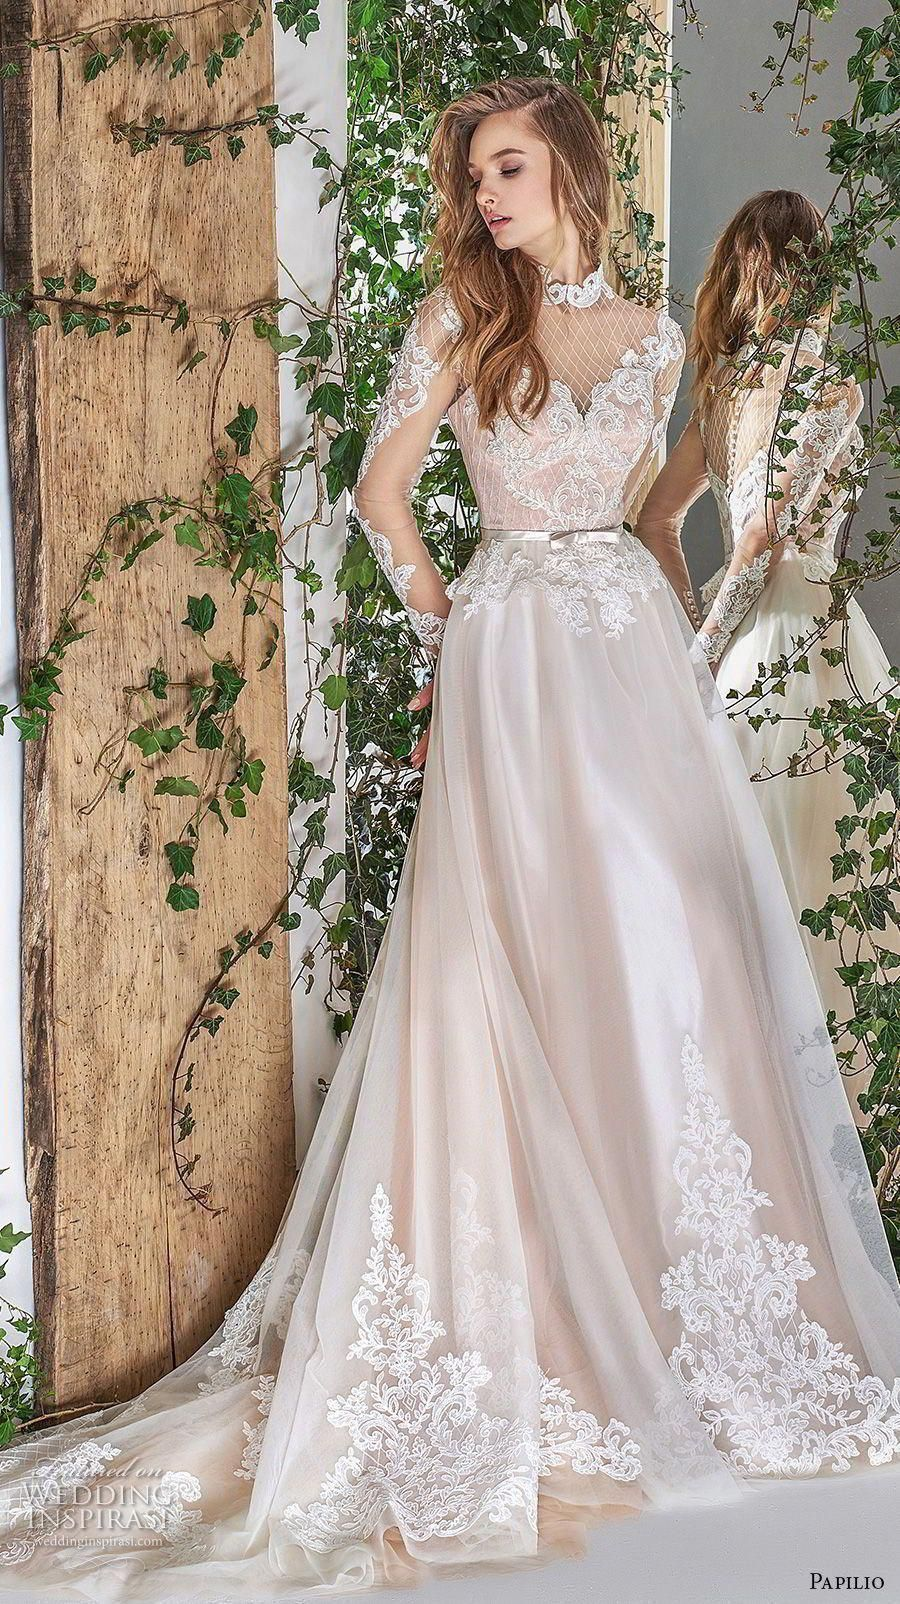 papilio 2018 bridal long sleeves illusion high neck sweetheart neckline heavily embellished bodice hem romantic a line wedding dress sheer button back chapel train (6) mv -- Papilio 2018 Wedding Dresses | Wedding Inspirasi #wedding #weddings #bridal     Source by fornevercm #Bridal #Collection #Dresses #fashion dresses wedding #Inspirasi #Papilio #Wedding #Wonderland #fashion #style #love #instagood #like #ootd #moda #fashionblogger #model #photography #ph #fashionweddingdress